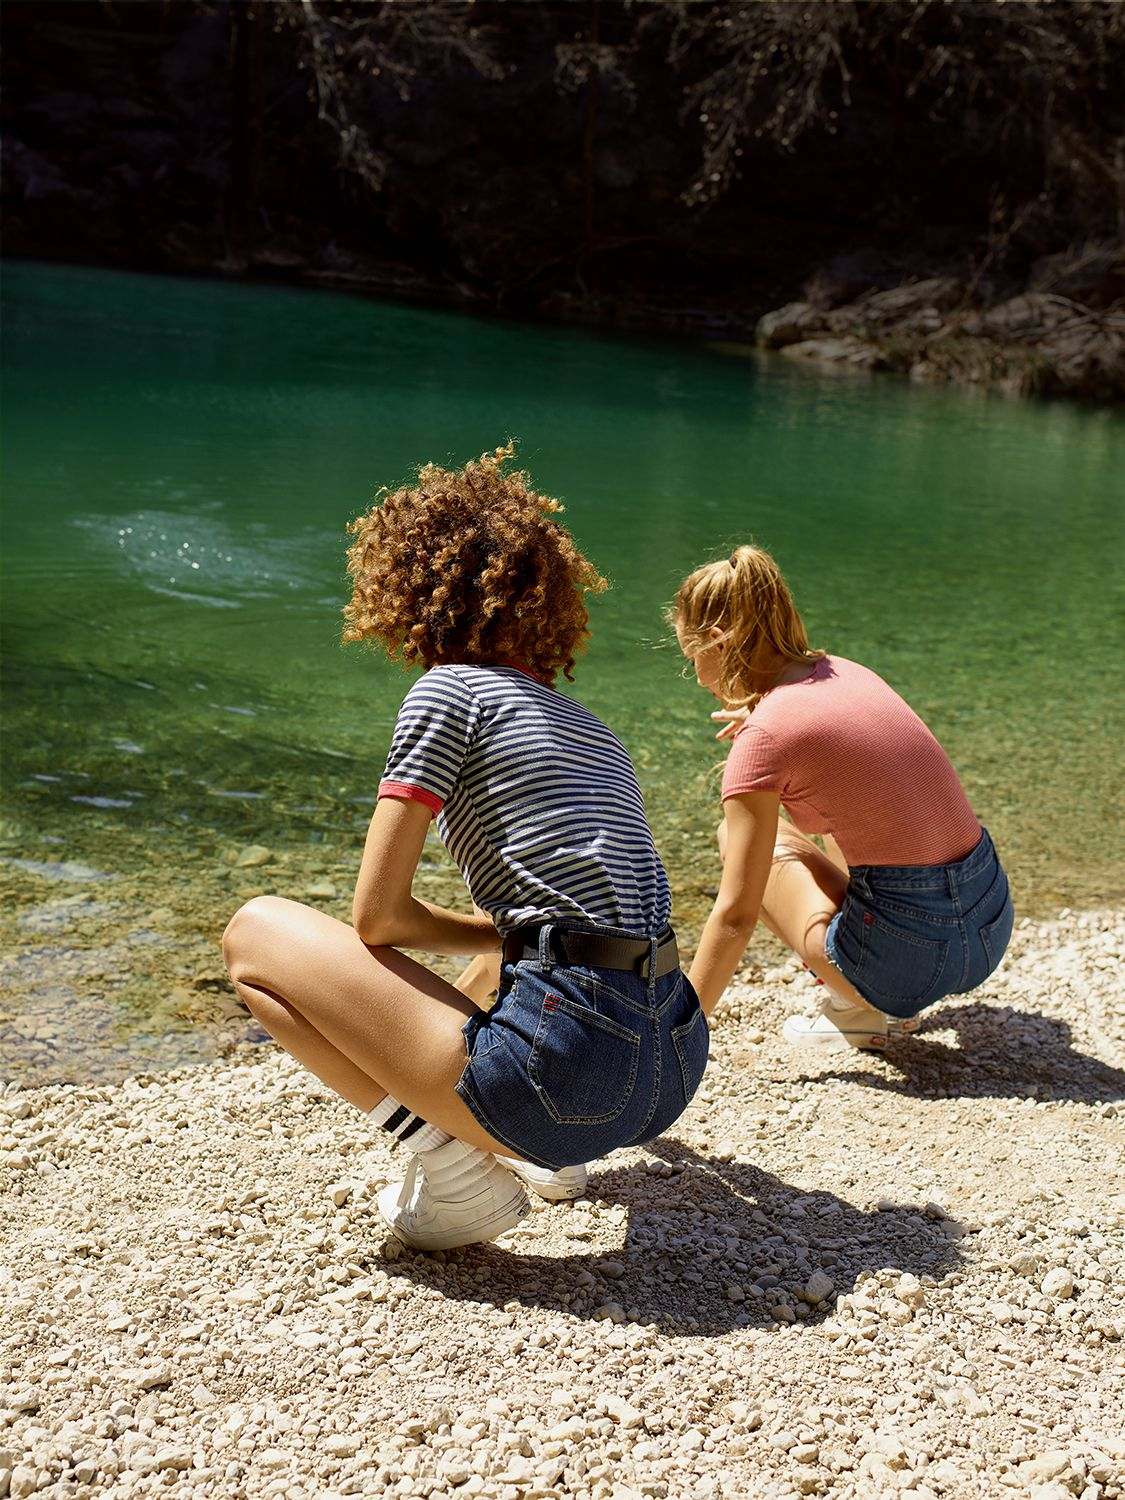 Lookbook: Retro Sport - Urban Outfitters | Summer camping ...